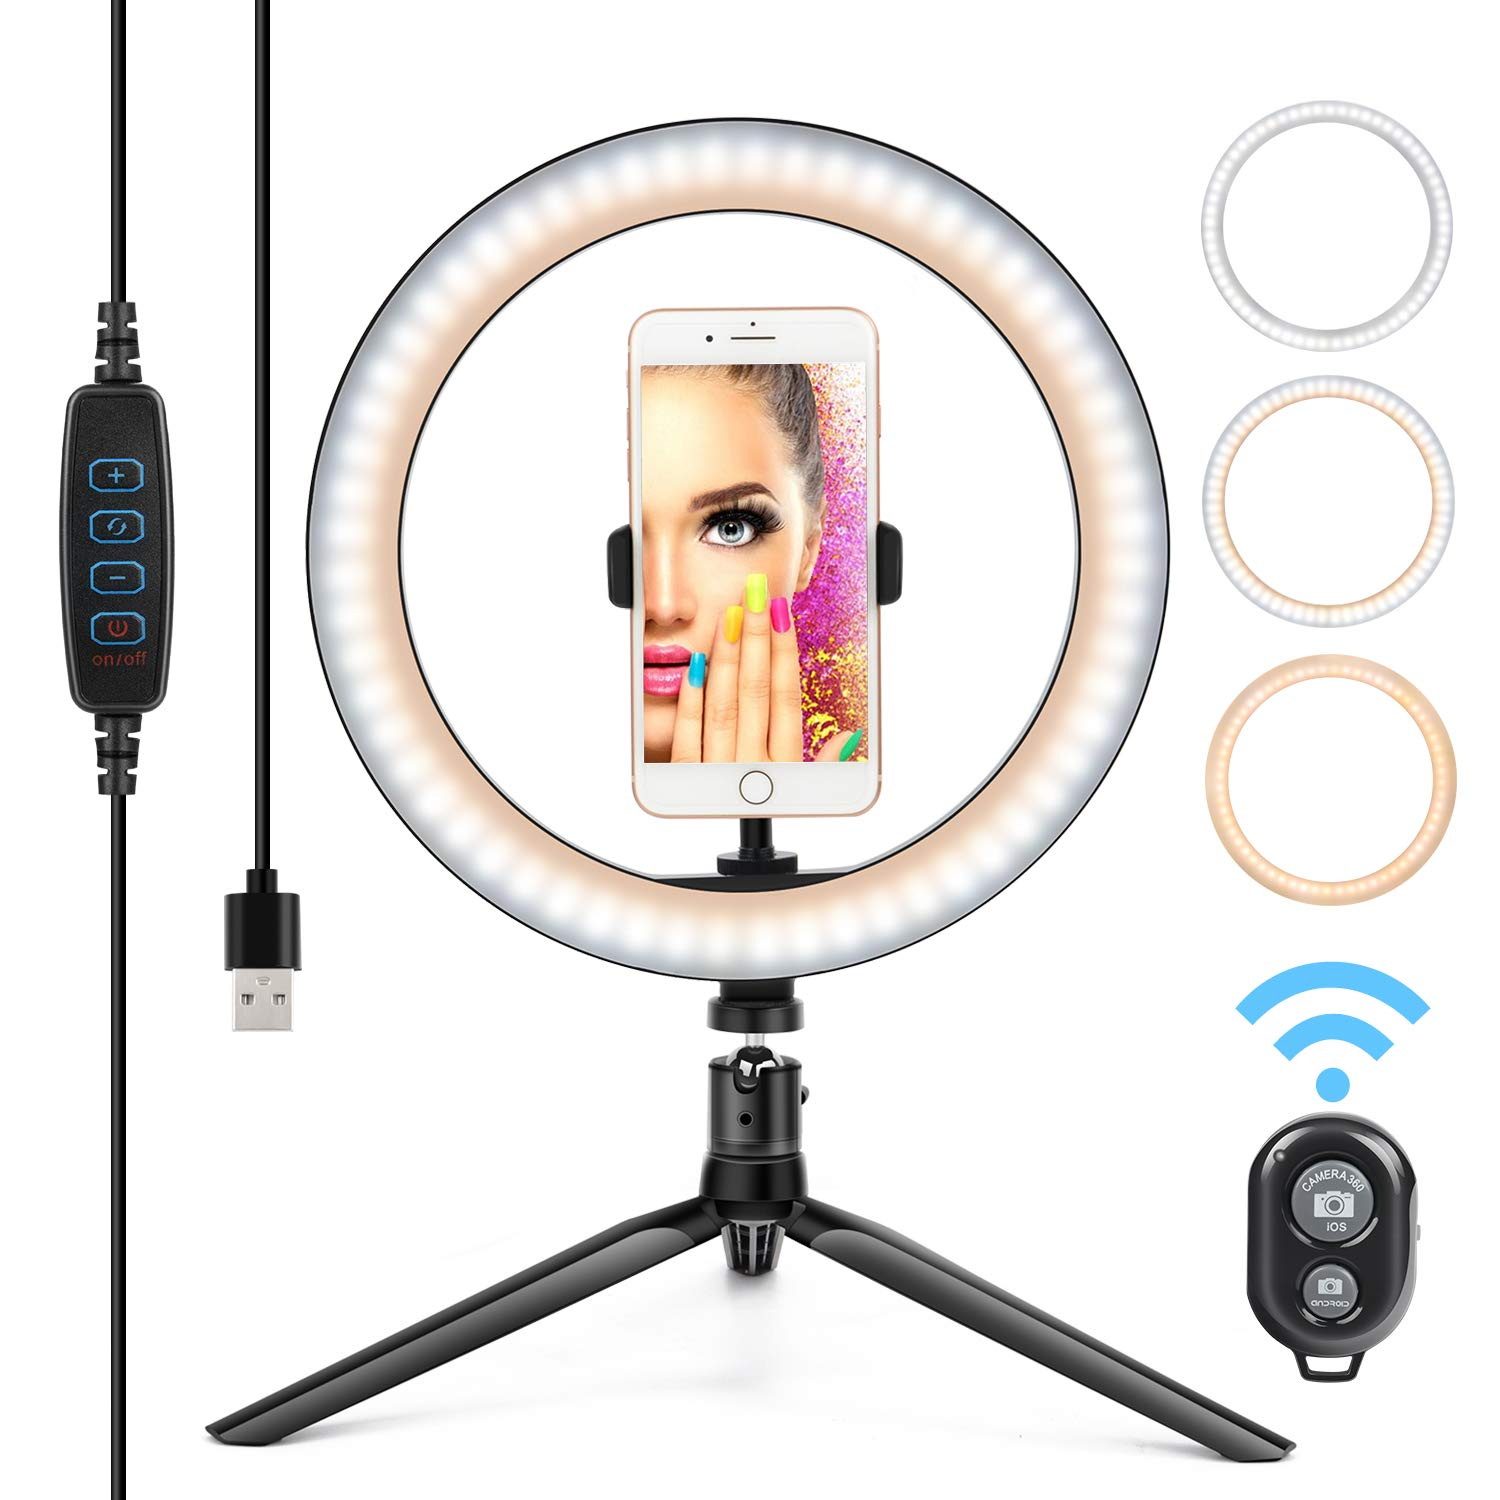 10 Ring Light LED Desktop Selfie Ring Light USB LED Desk Camera Ringlight 3 Colors Light with Tripod Stand iPhone Cell Phone Holder and Remote Control for Photography Makeup Live Streaming 71GV4bI2Bk6L